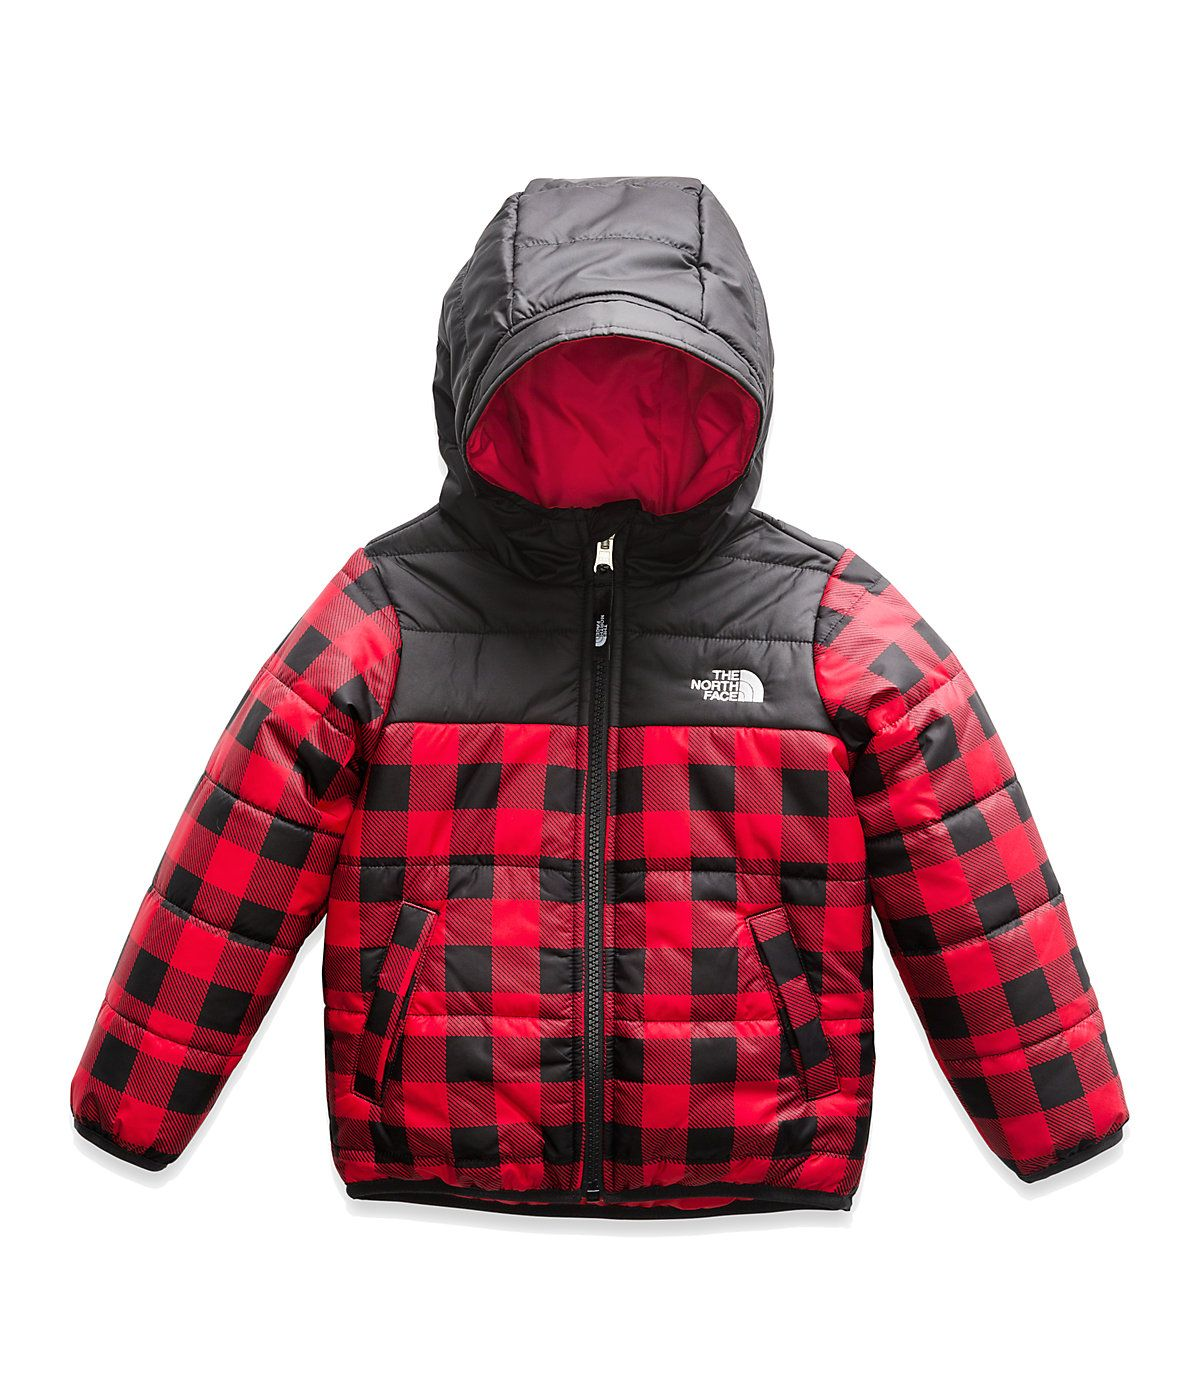 87cf1fc24 Toddler Boys' Reversible Perrito Jacket in 2019 | Products | Toddler ...